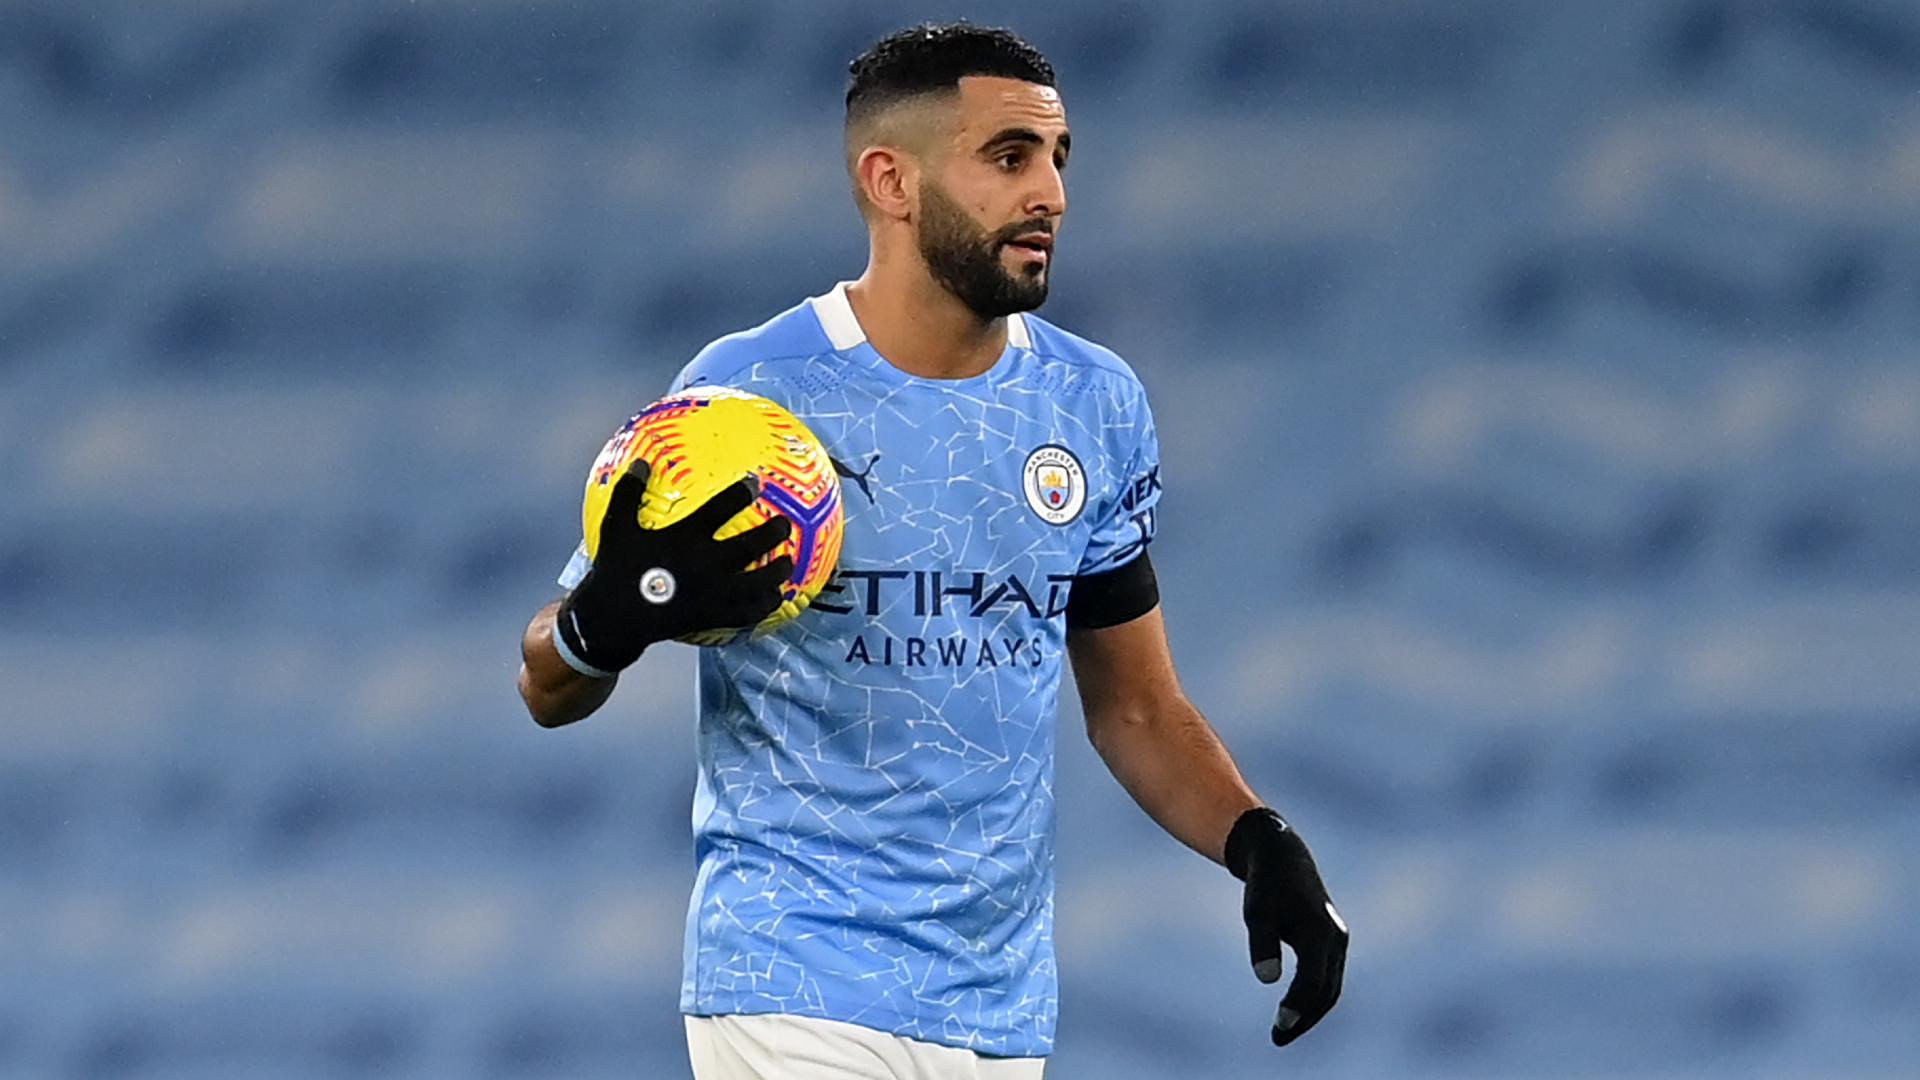 Hat-trick hero Mahrez helps shake Man City goal 'frustration' in five-star showing against Burnley